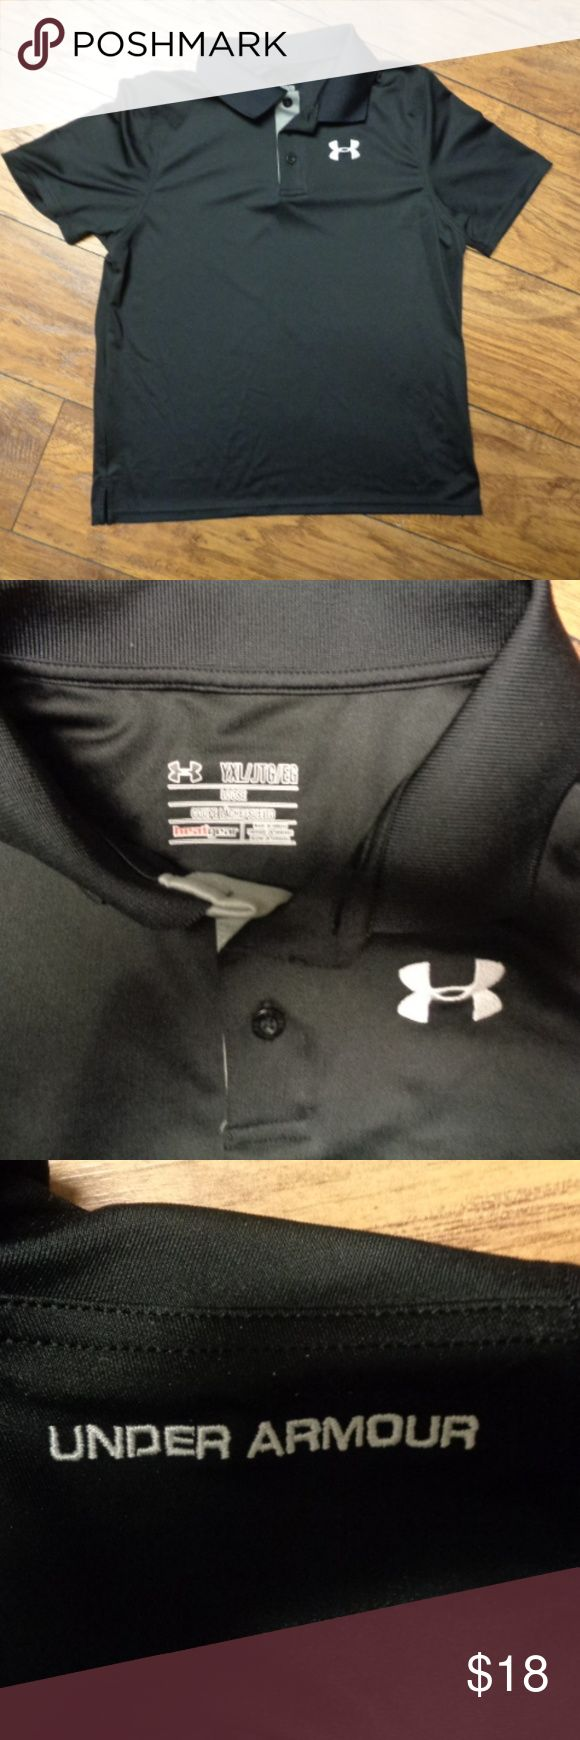 Boy's Black Loose Fit Golf Polo Shirt UNDER ARMOUR Up for sale is a youth boy's loose fit short sleeve Golf Polo Shirt by UNDER ARMOUR Heatgear ~~ Size Youth XL  This short sleeve polo shirt is a solid black in color and has a white under armour emblem embroidered on the front and say's Under Armour across the shoulder on the back.  This polo shirt is in excellent condition and comes from my clean smoke free and pet free home. Any questions, please ask Under Armour Shirts & Tops Polos